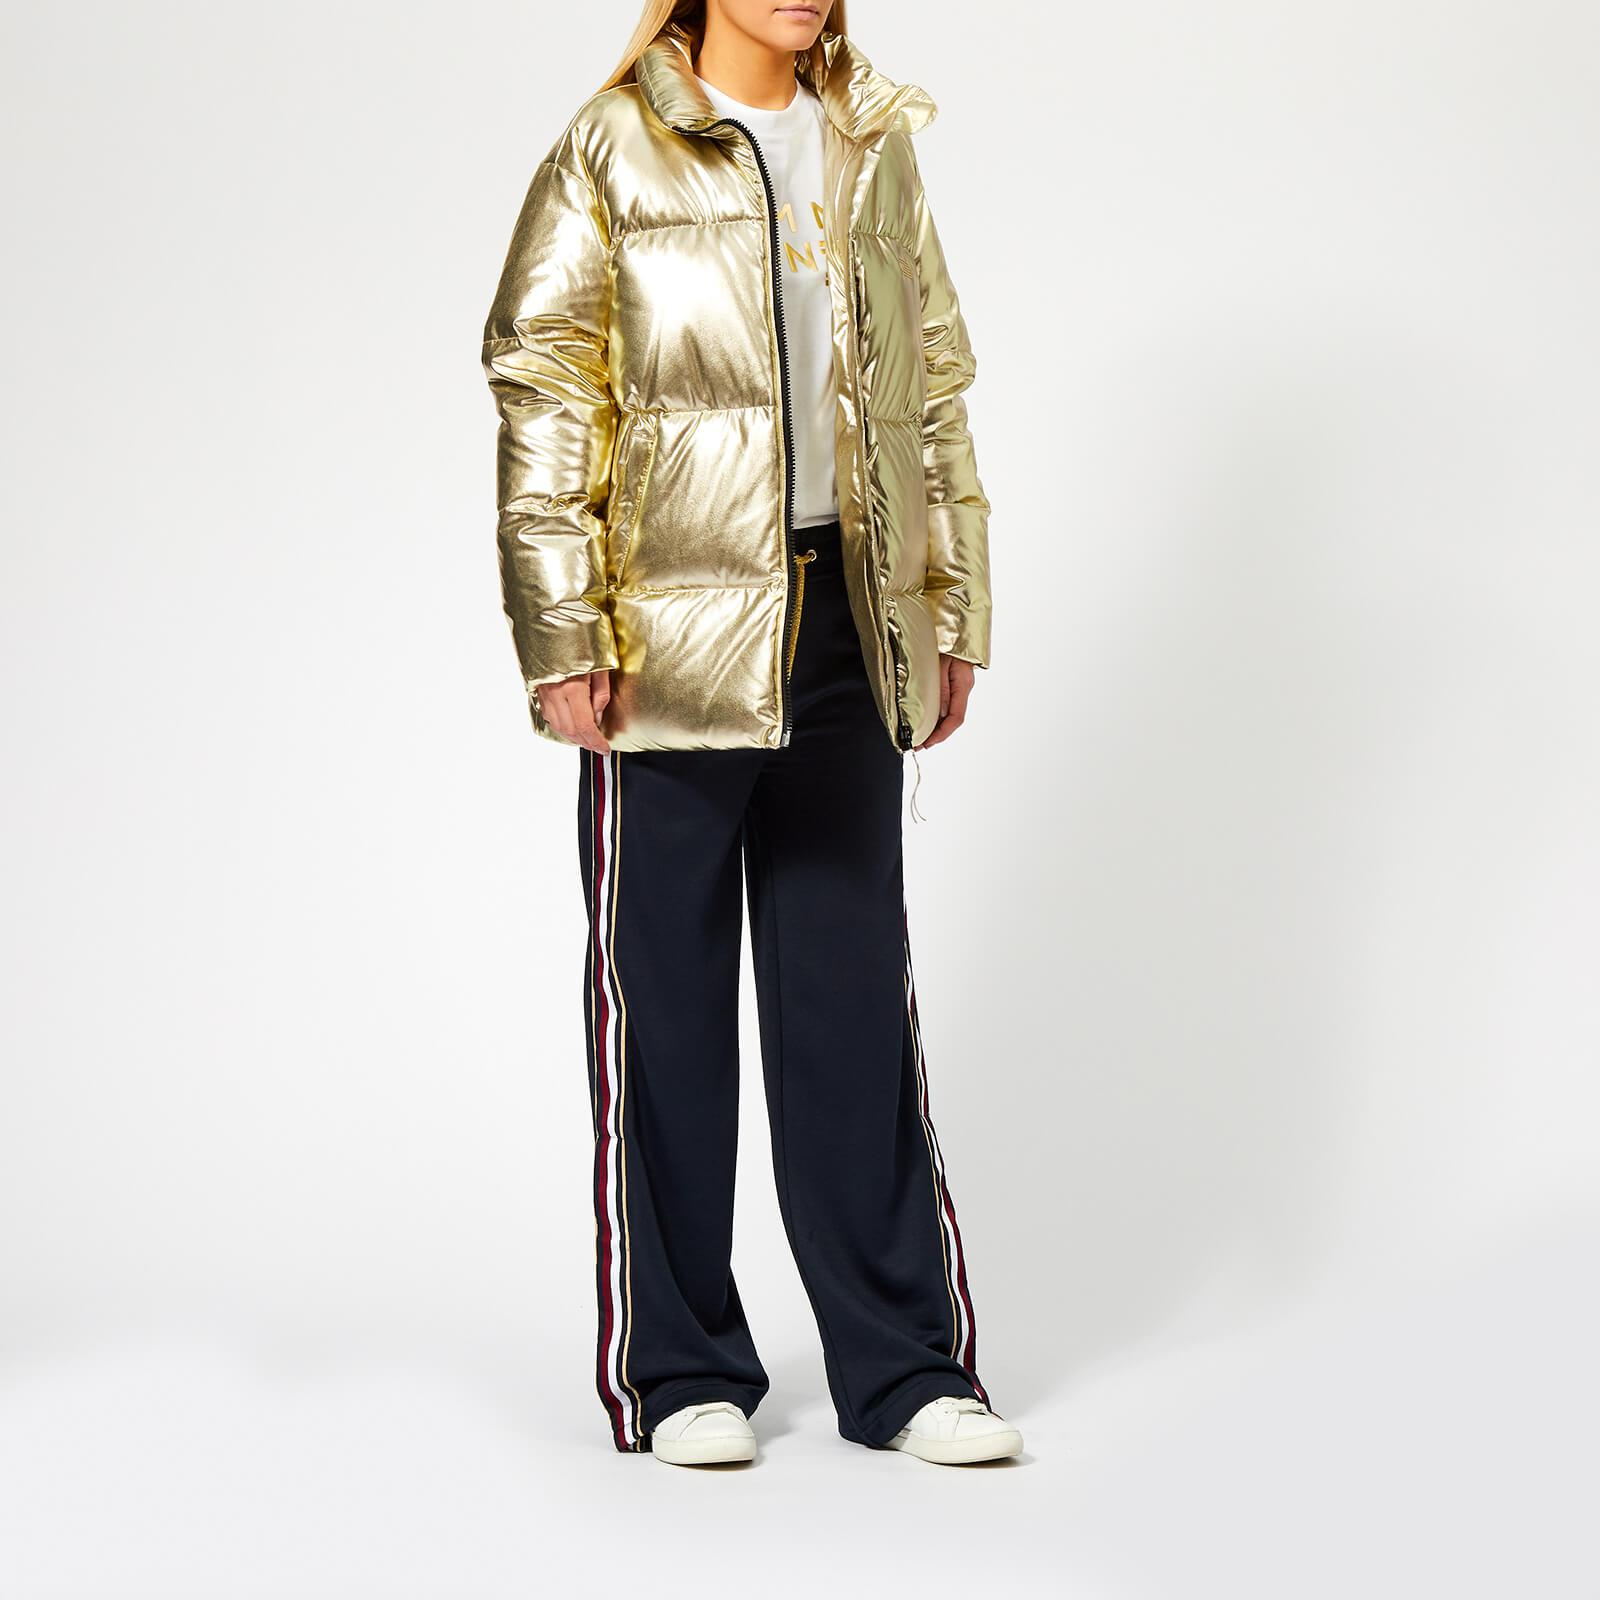 e993125a097 Tommy Hilfiger Icons High Gloss Jacket in Metallic - Lyst